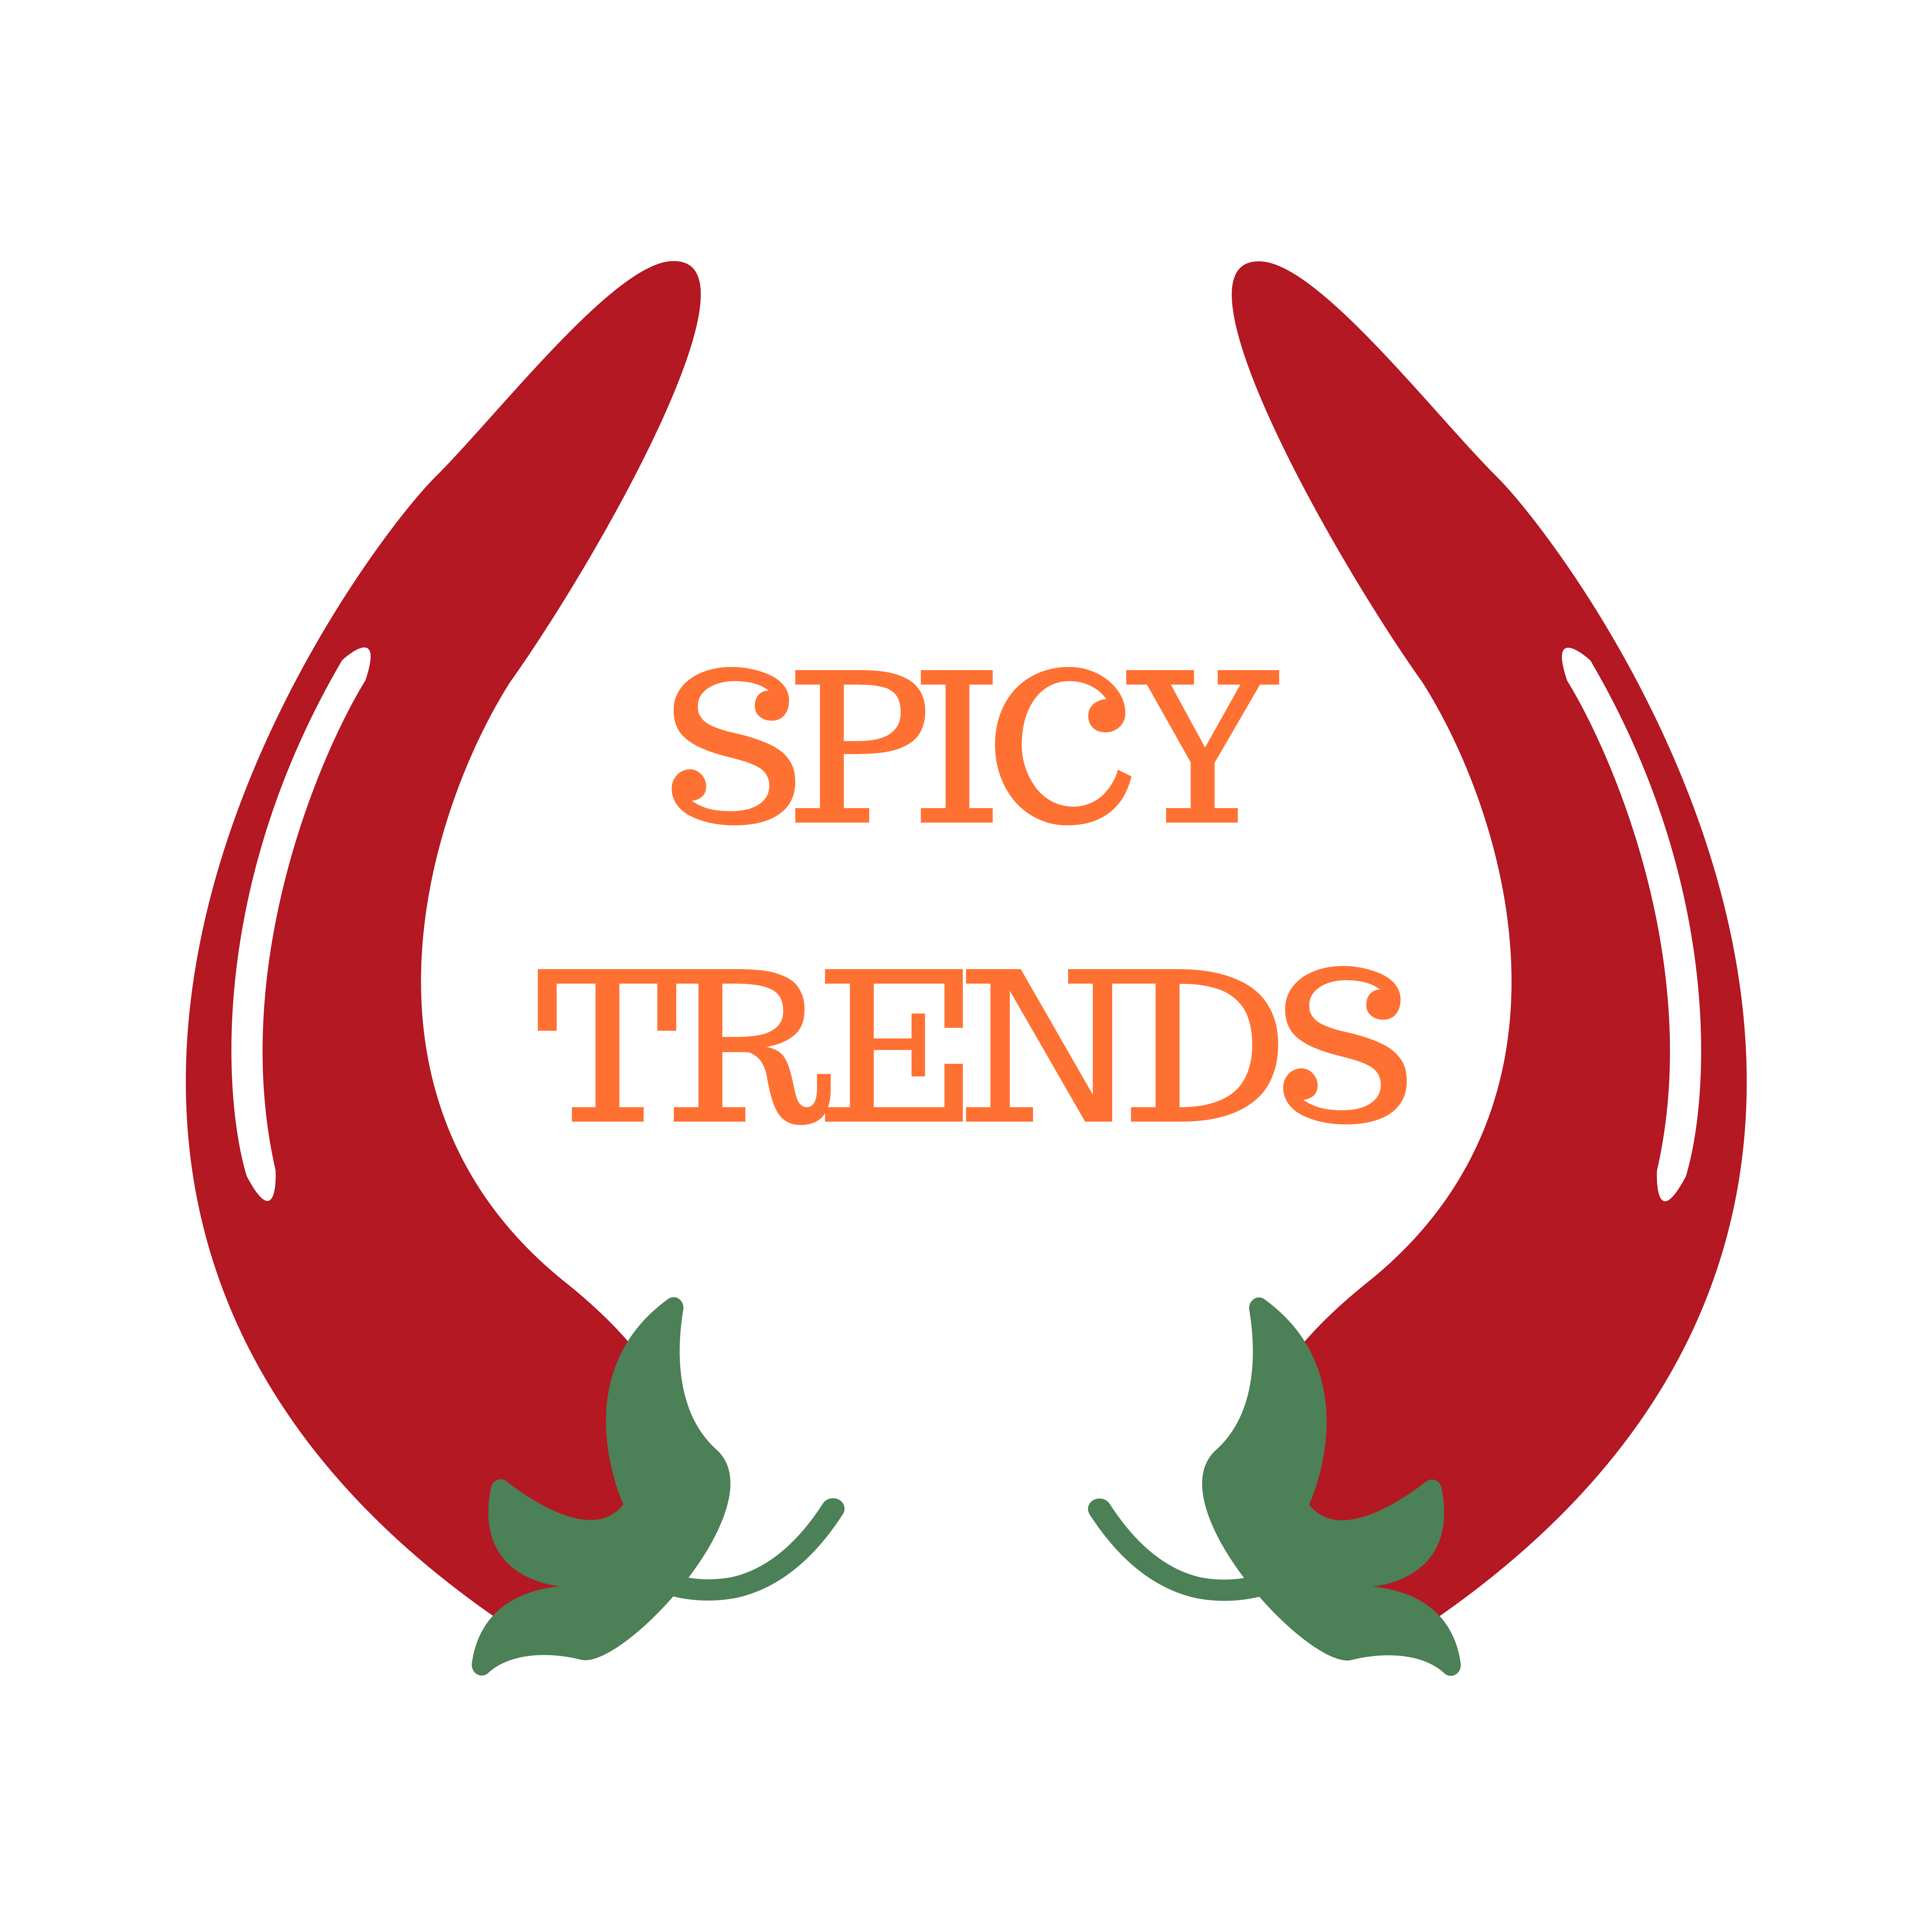 SpicyTrends